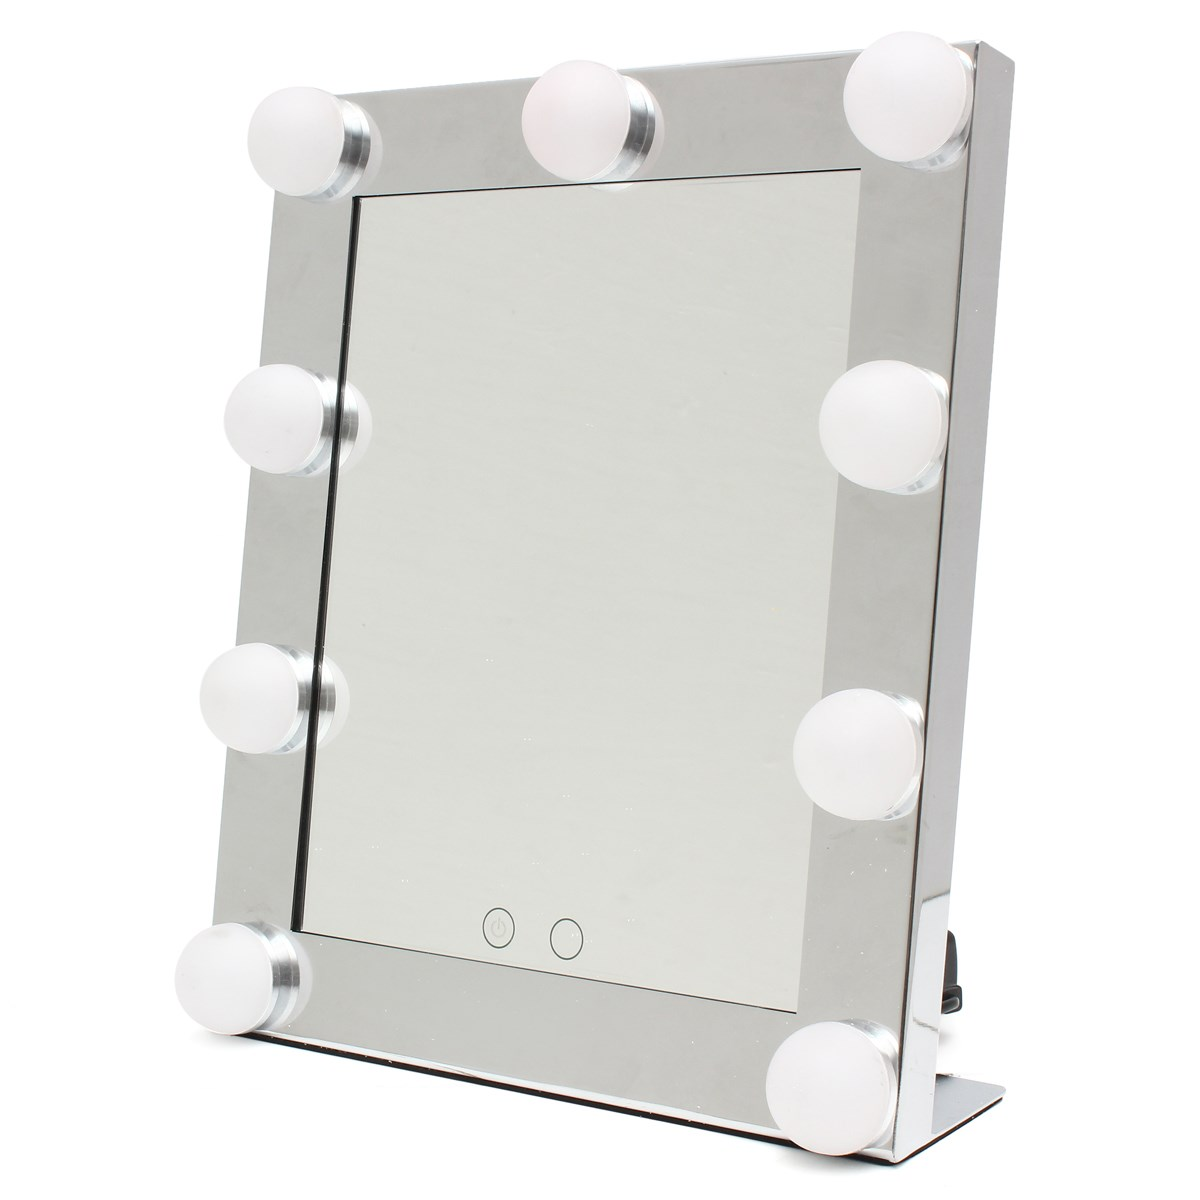 Professional LED Touch Screen Lighted Vanity Mirror Standing Table Mirrors  Large Salon Cosmetic Desktop Makeup Mirror With Light In Makeup Mirrors  From ...